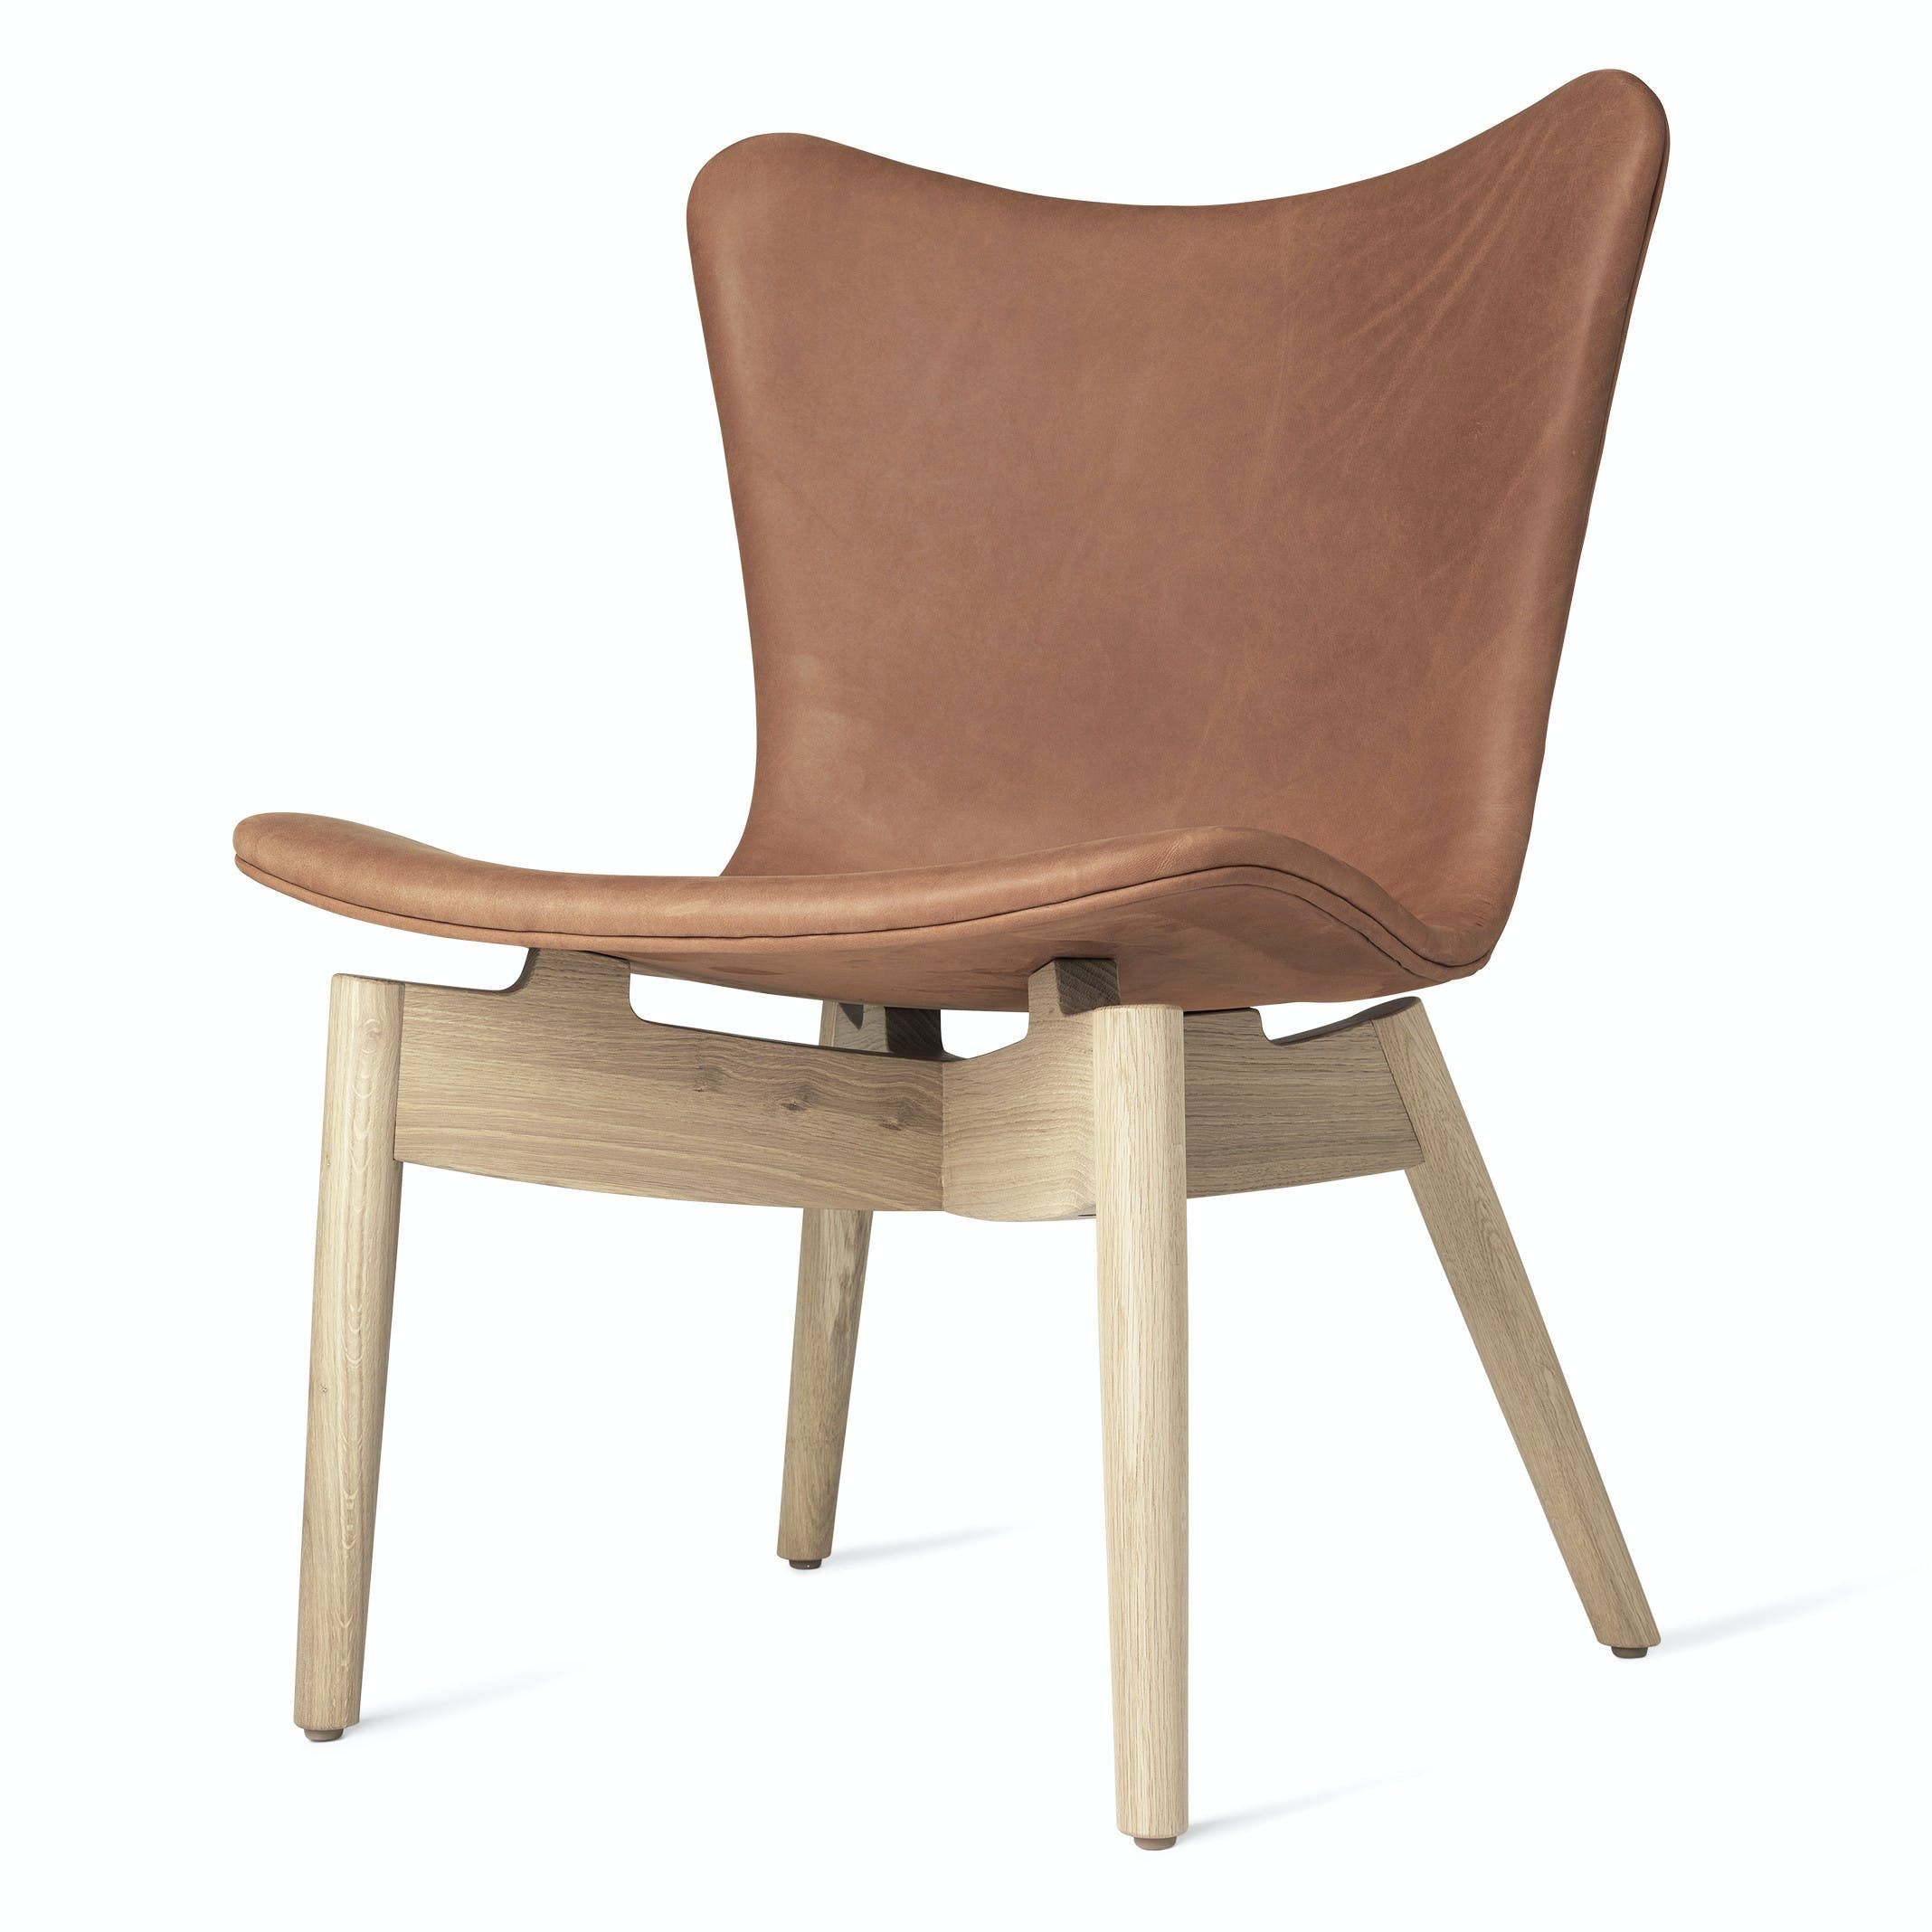 Mater Rust Shell Lounge Chair Oak Legs Haute Living